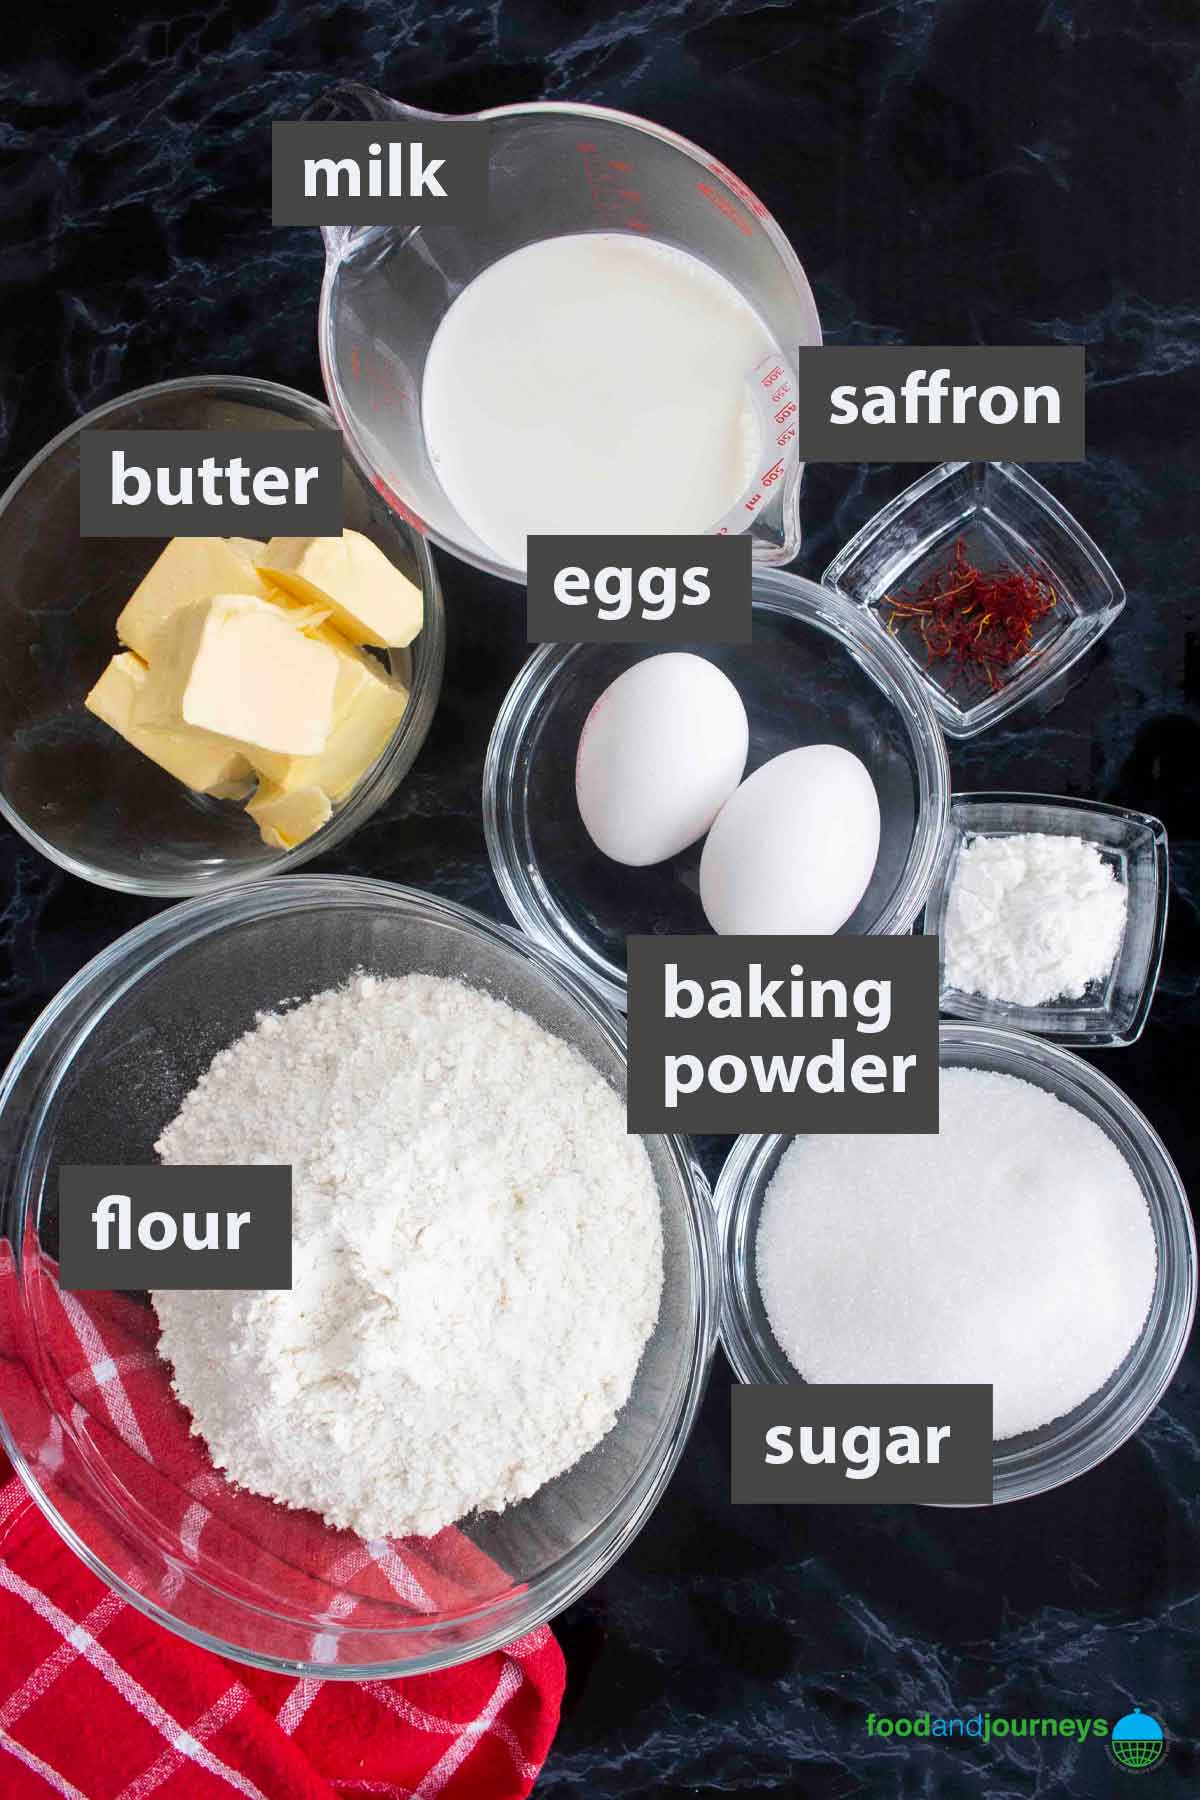 An image showing all the ingredients you need to prepare Saffron Cake.